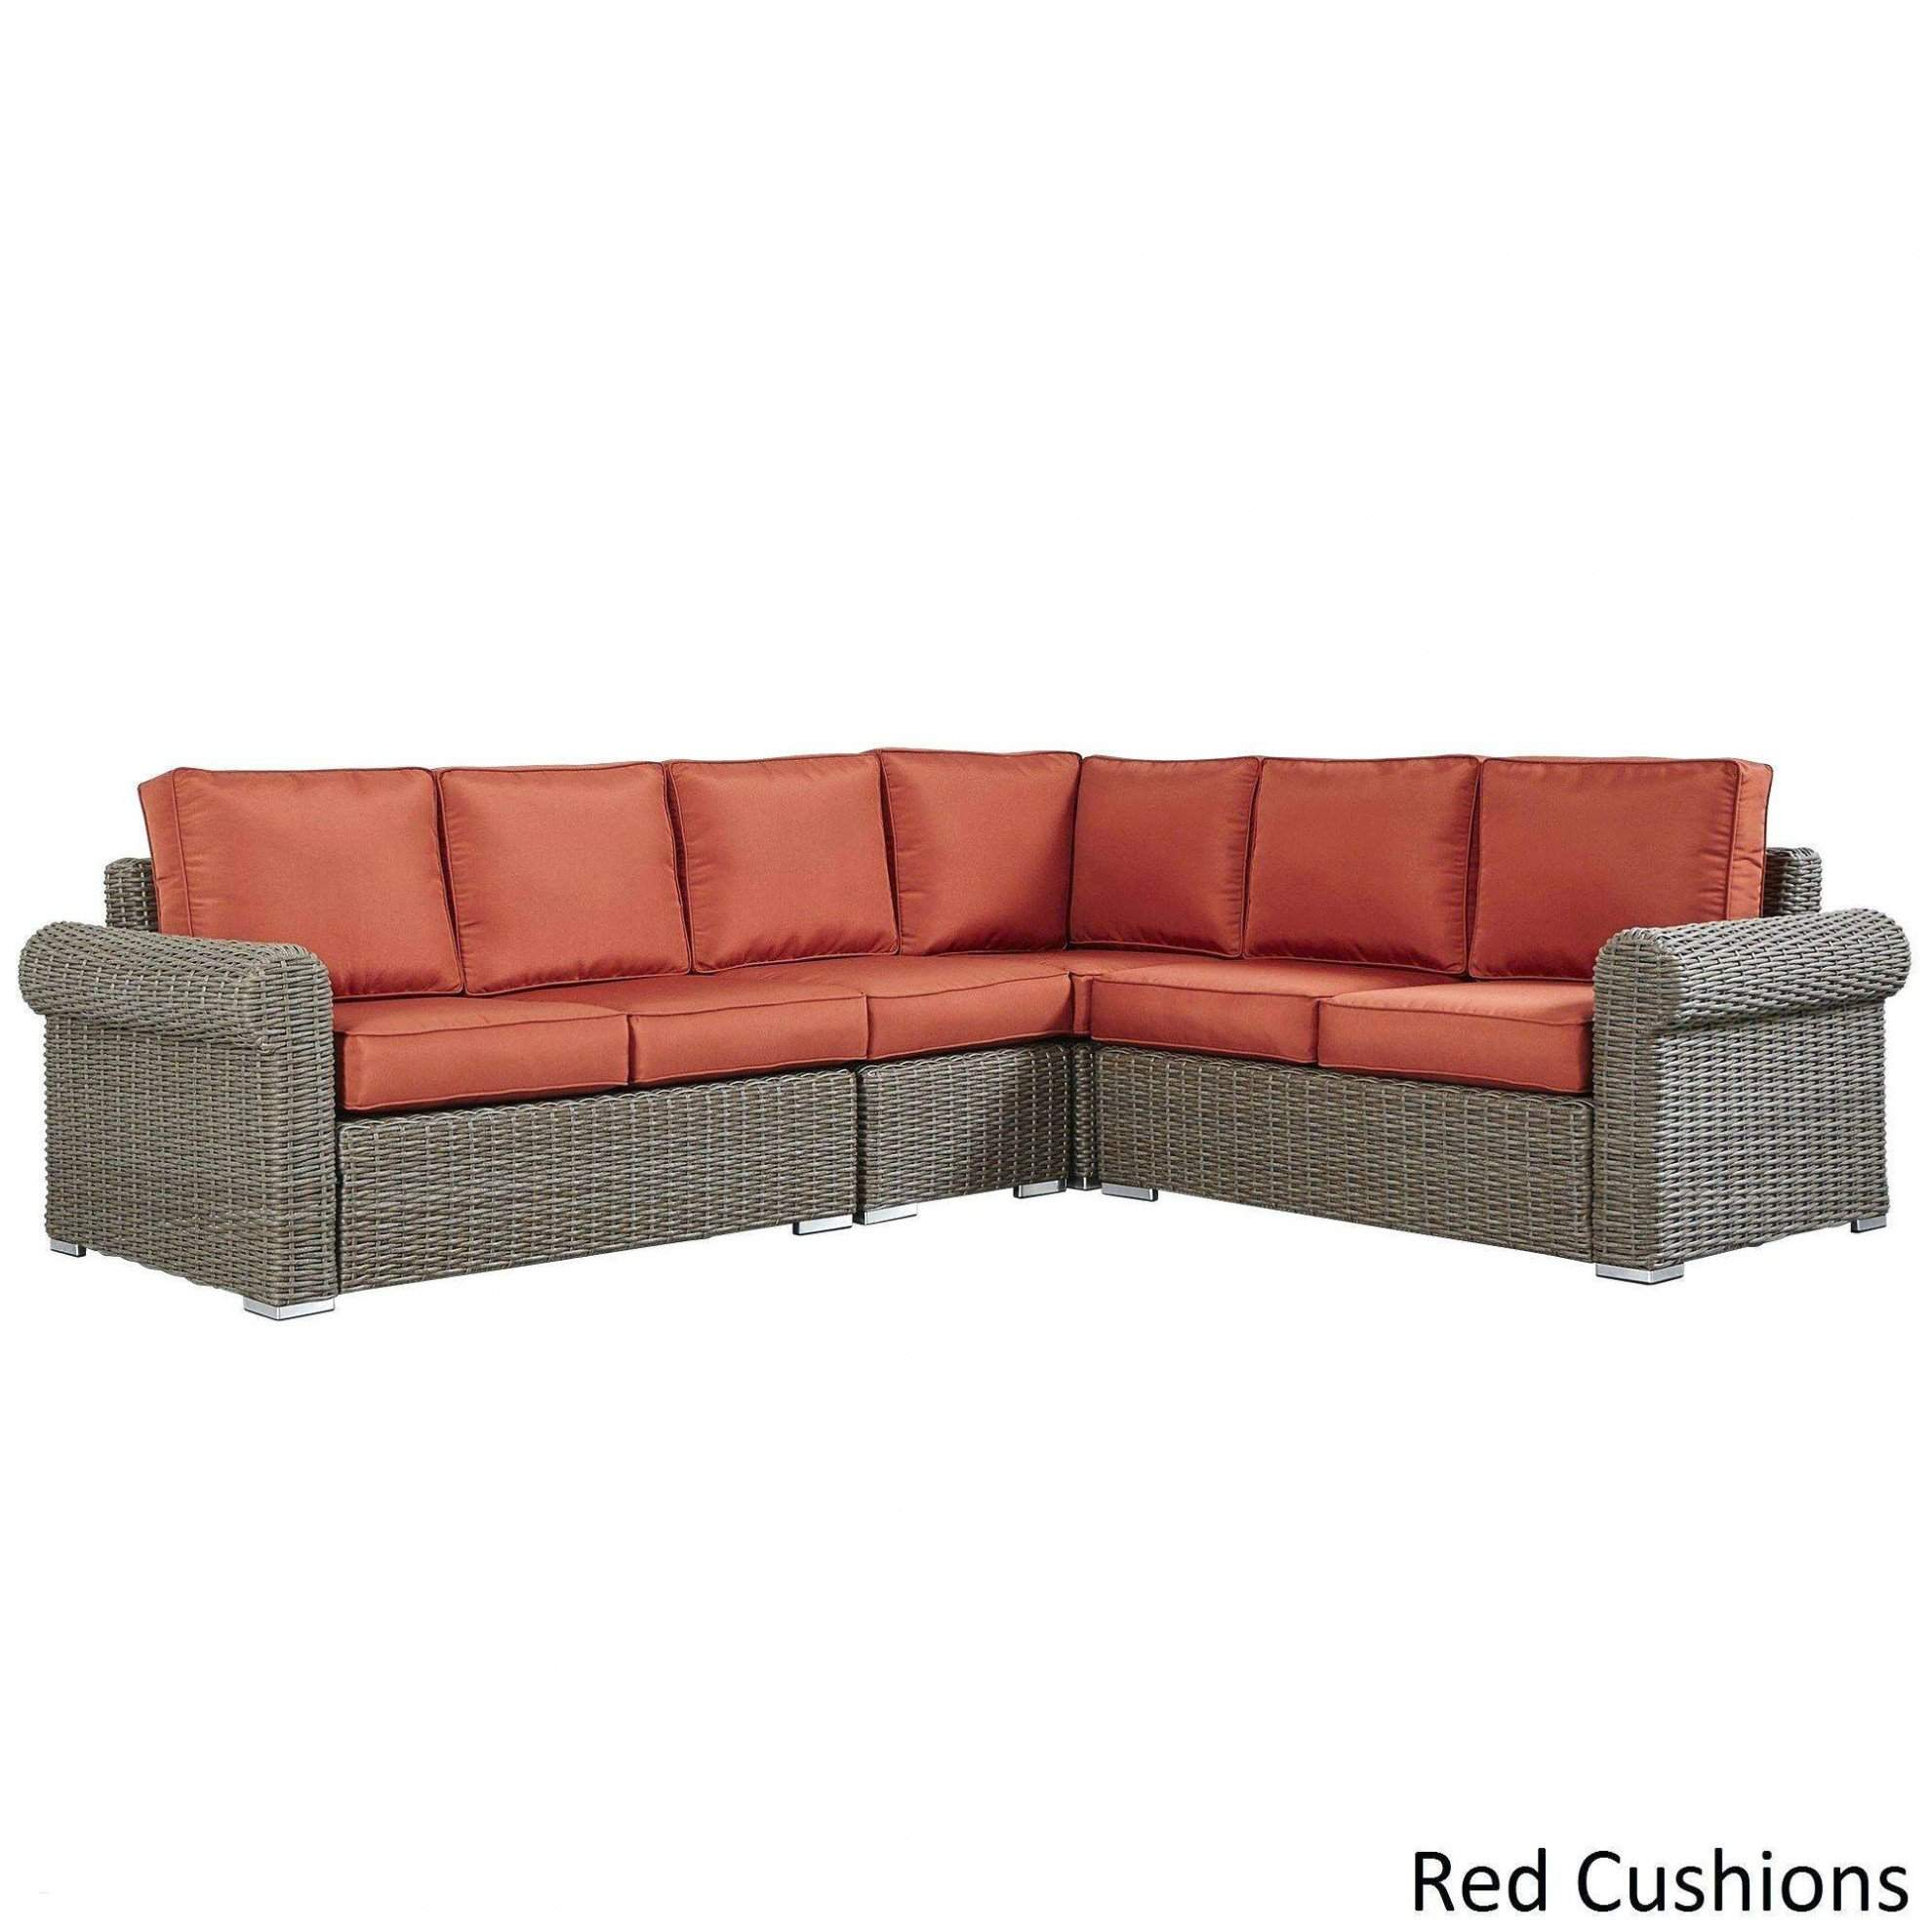 living room brown couch new rattan outdoor furniture awesome wicker outdoor sofa 0d of living room brown couch